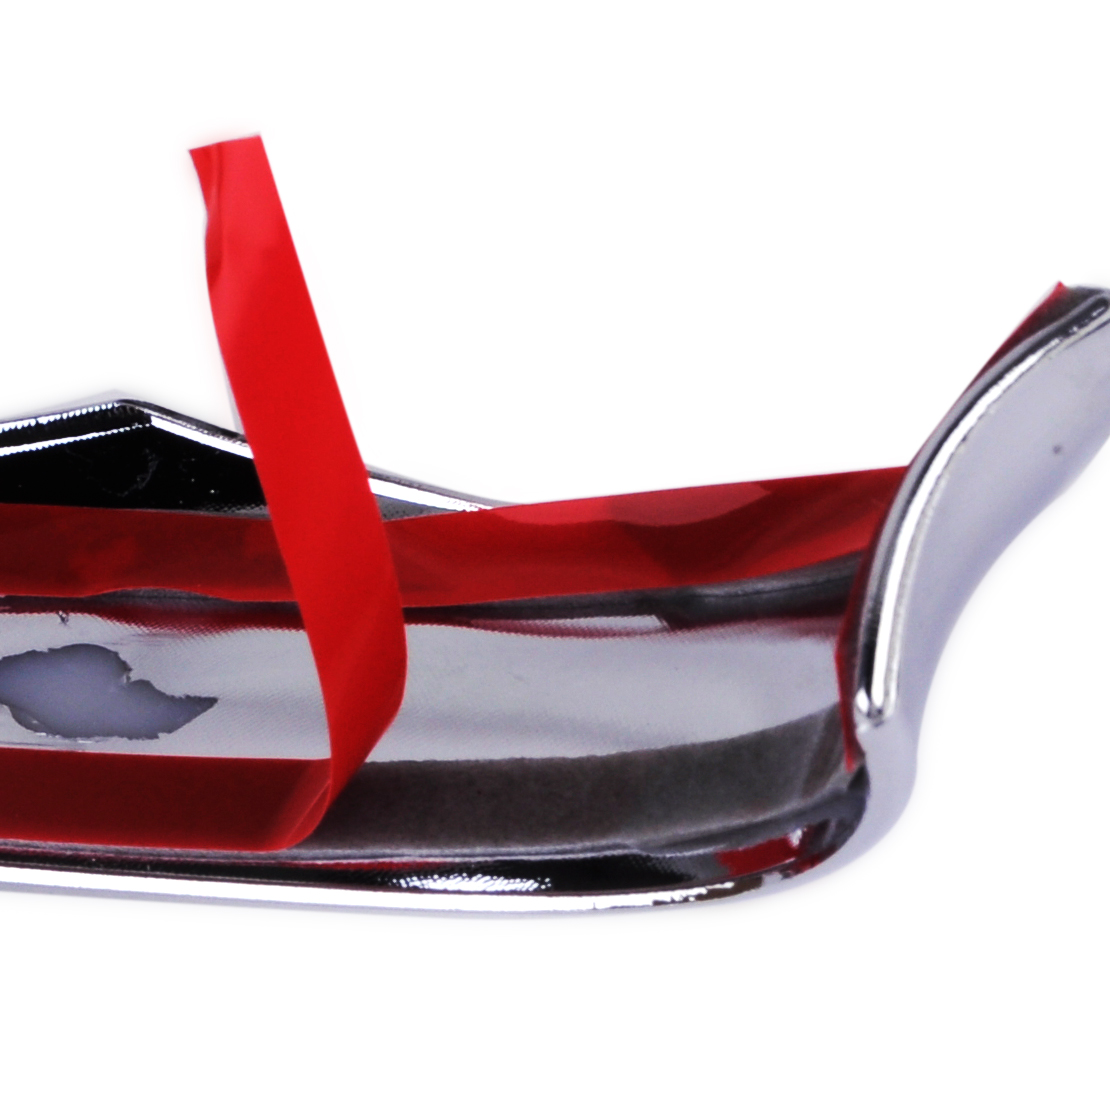 DWCX New Car Styling Chrome Plated ABS Rearview Mirror Cover Trim Decoration 26x2.6cm Fit For Mazda 6 Atenza 2014 2015 2016 2017